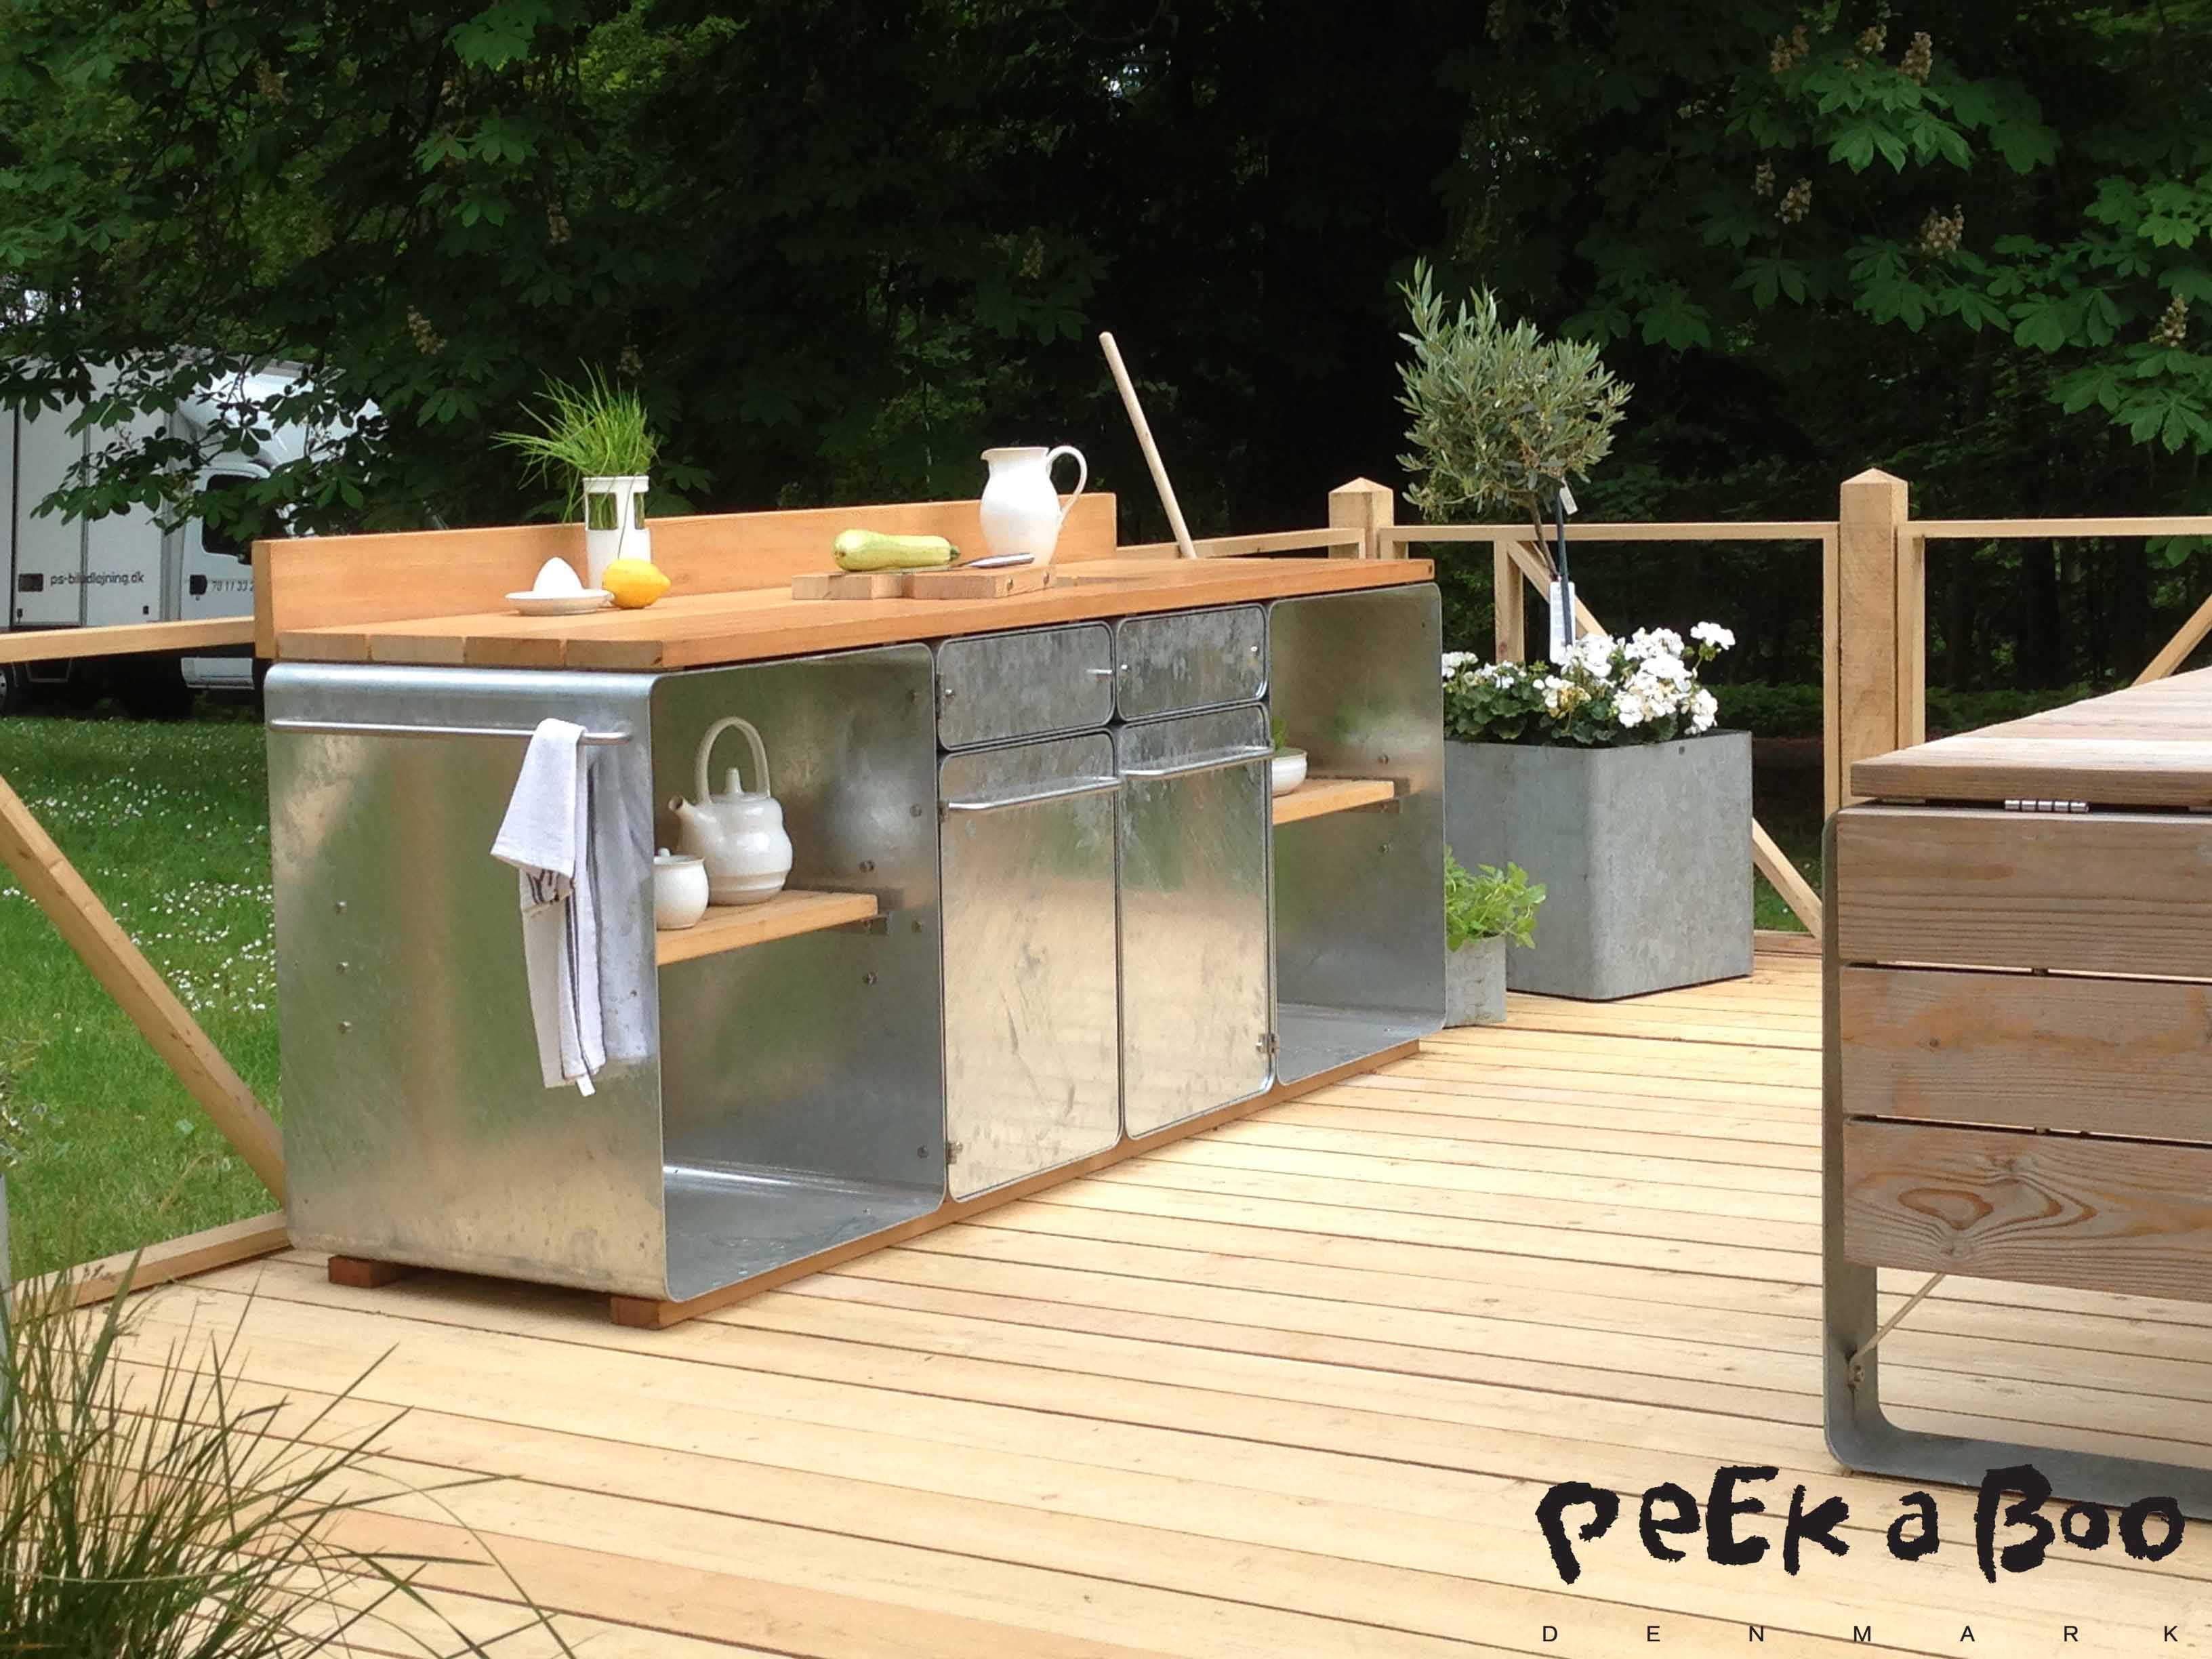 Outdoor kitchen from OUTSIDE design. danish design at it's best.